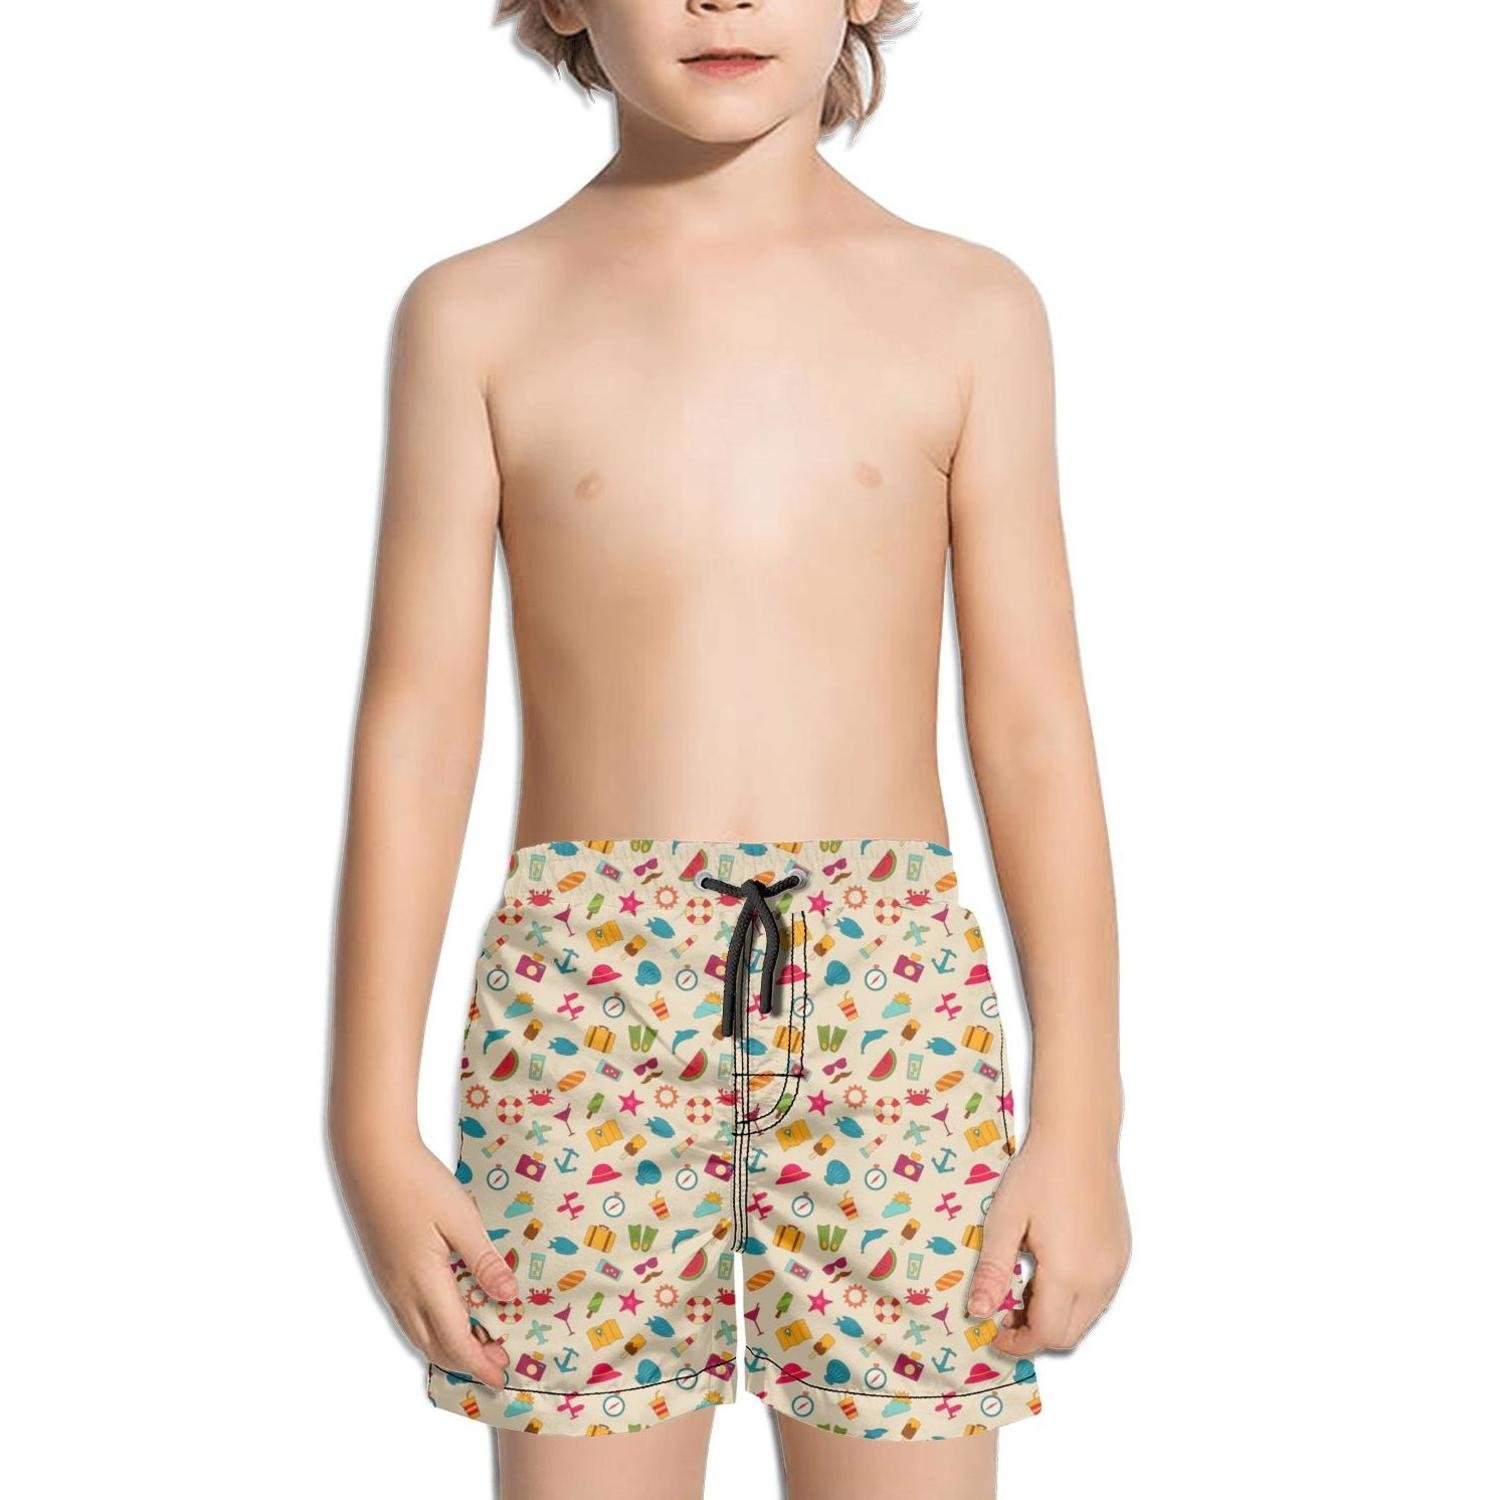 Ina Fers.Quick Dry Swim Trunks Summer Time Travel Objects Shorts for Boys